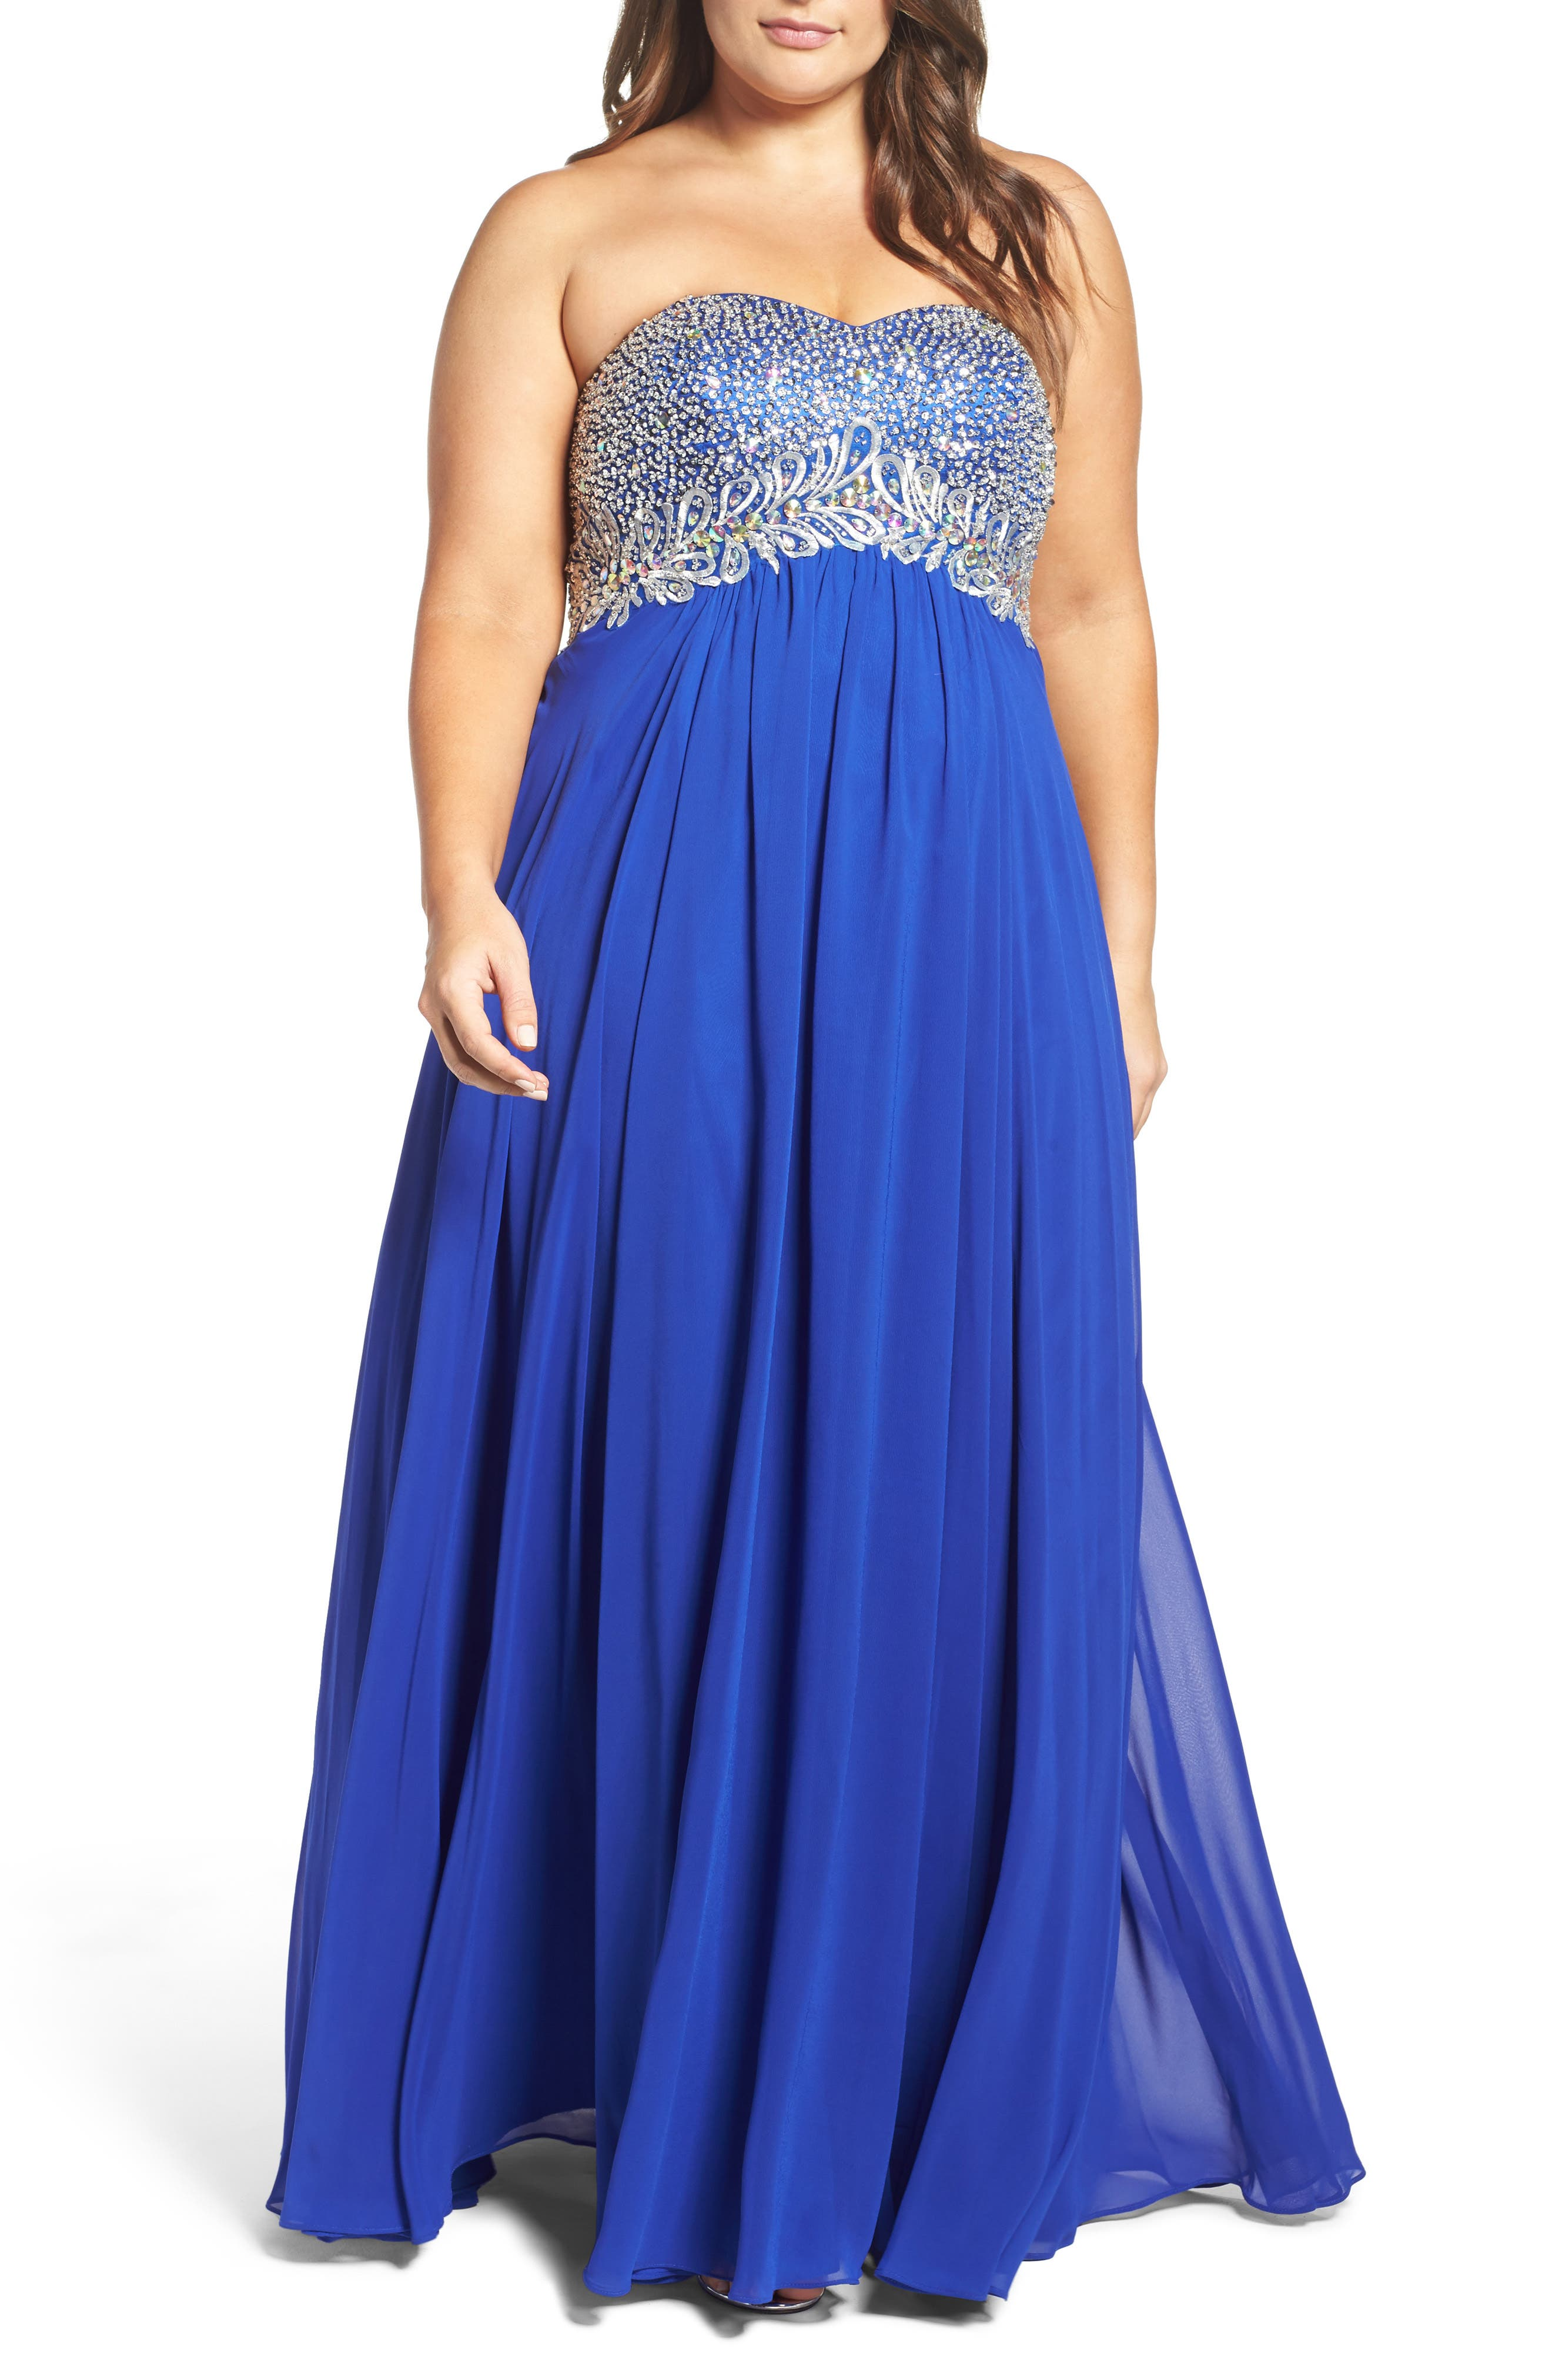 Main Image - Decode 1.8 Embellished Strapless Gown (Plus Size)